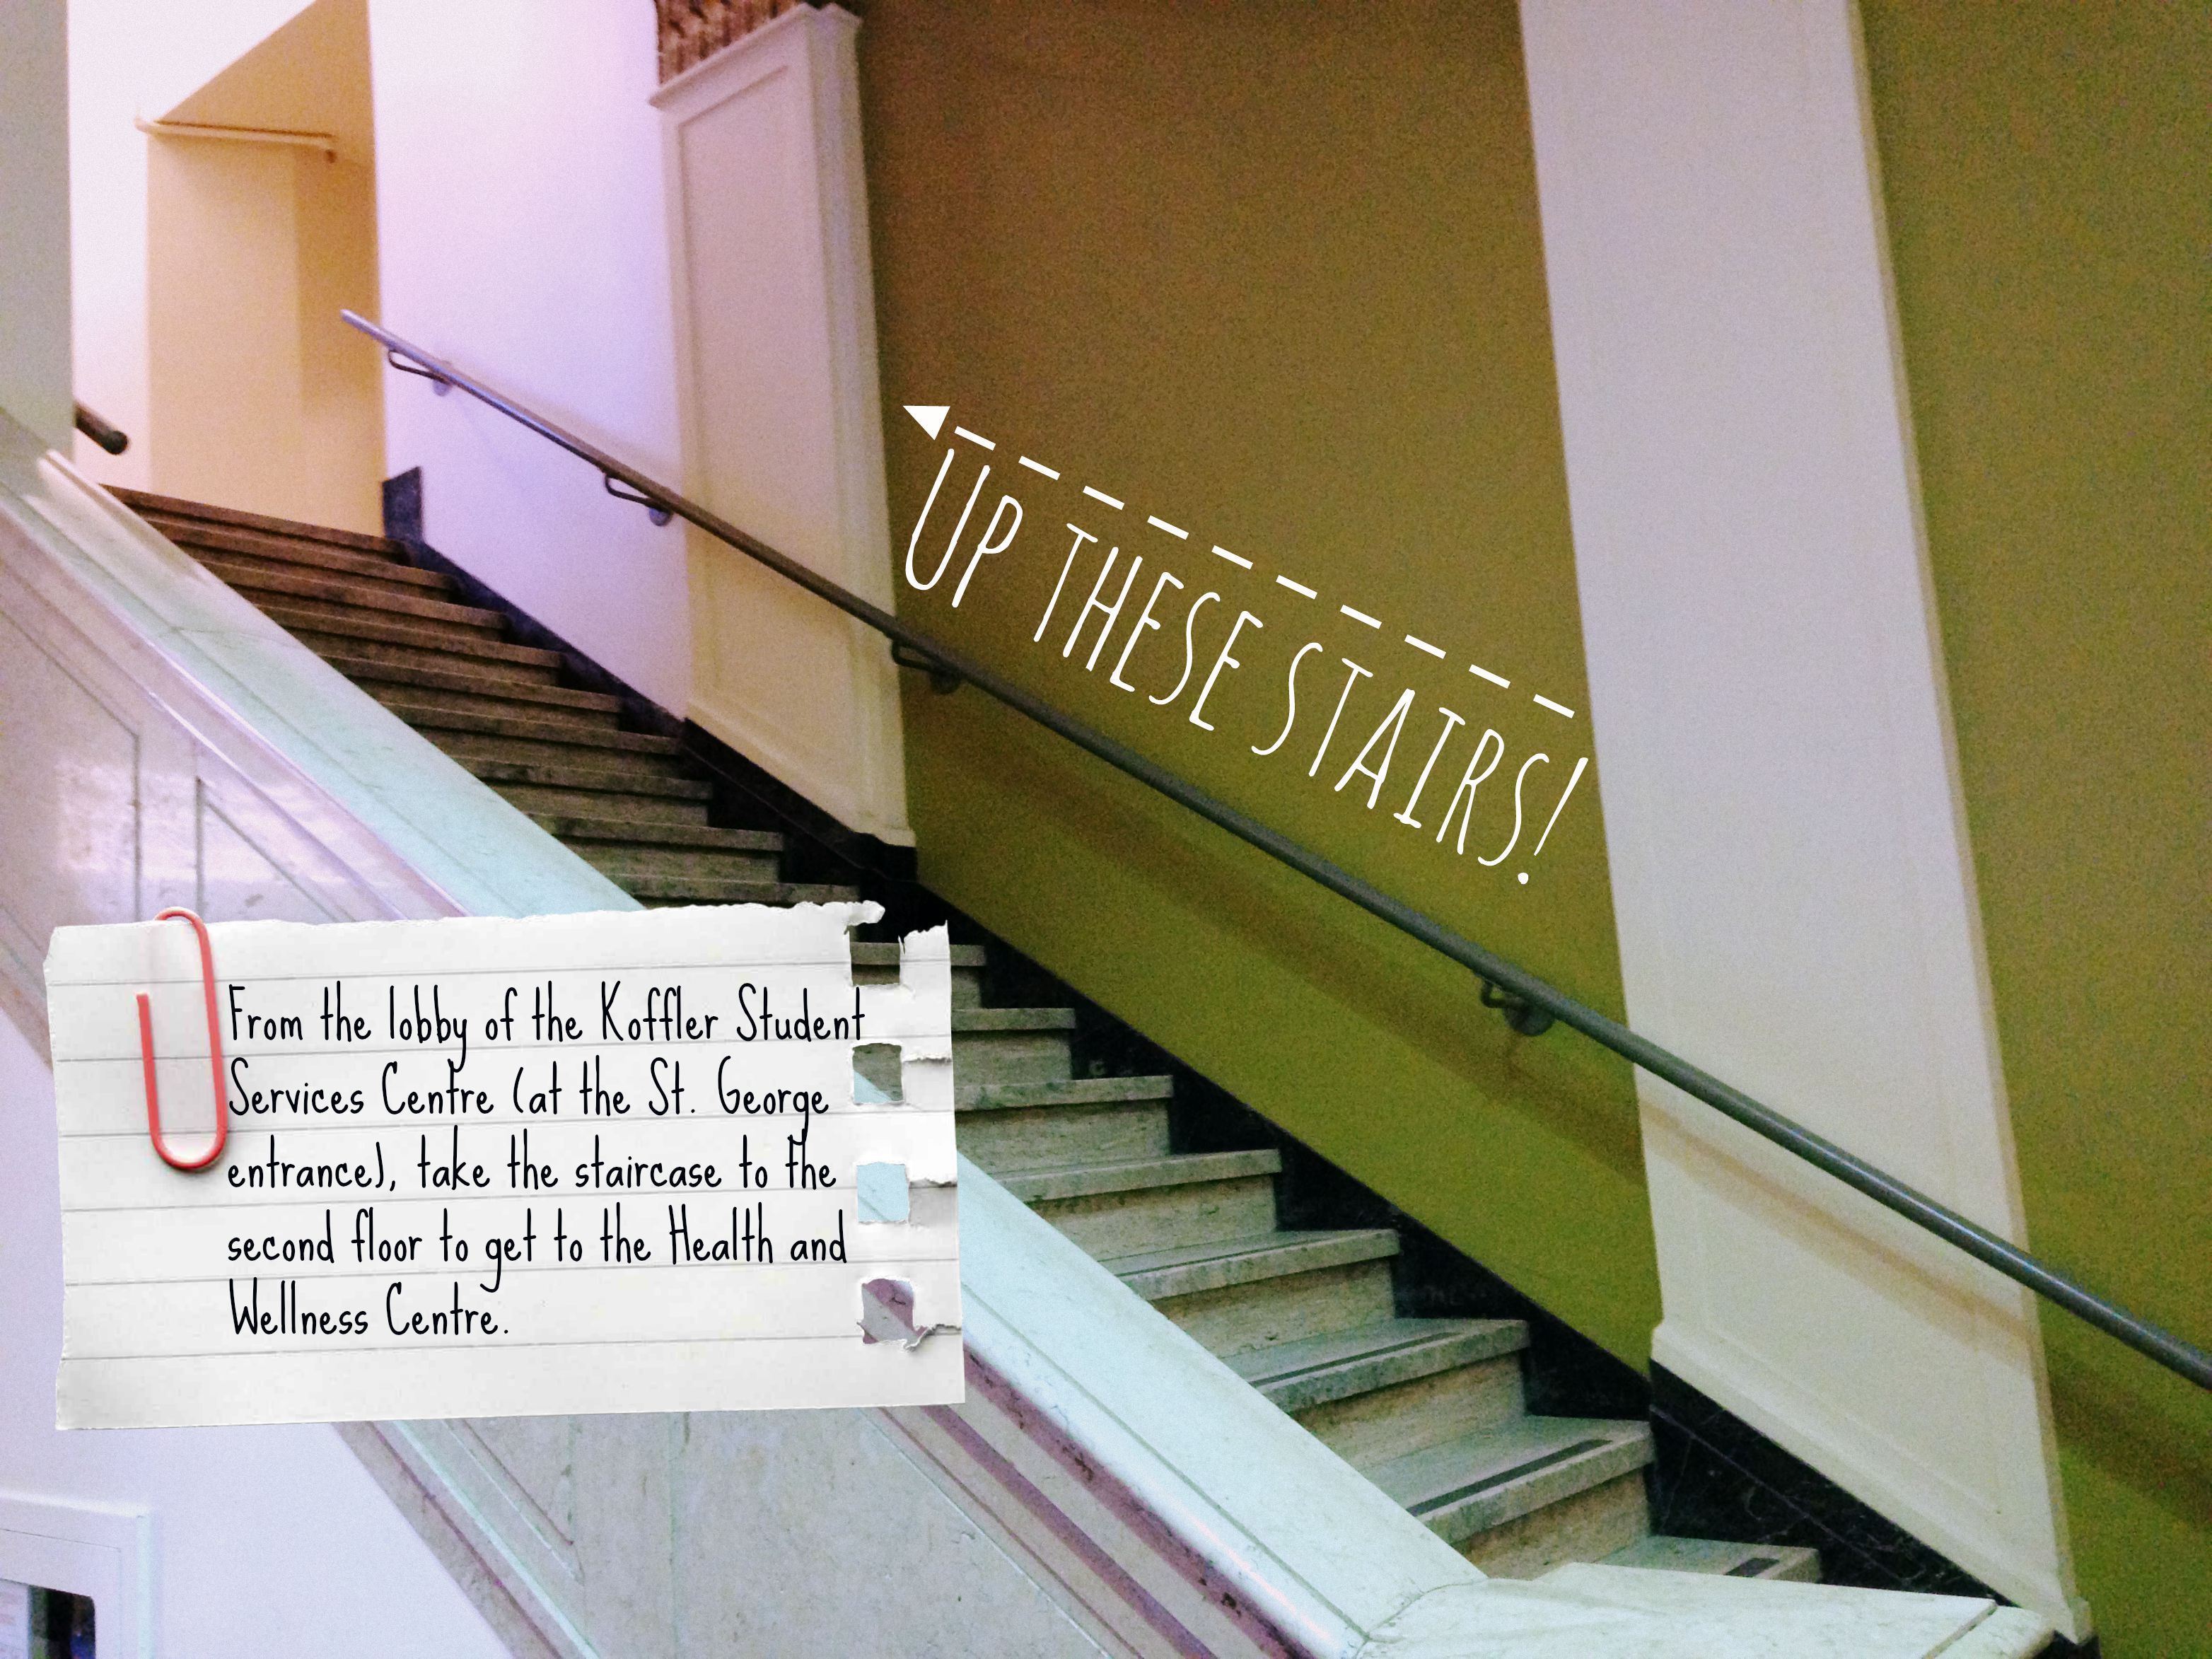 A picture of the stairs leading to the Health and Wellness Centre with instructions on how to get there: From the lobby of the Koffler Student Services Centre (at the St. George entrance), take the staircase to the second floor to get to the Health and Wellness Centre.